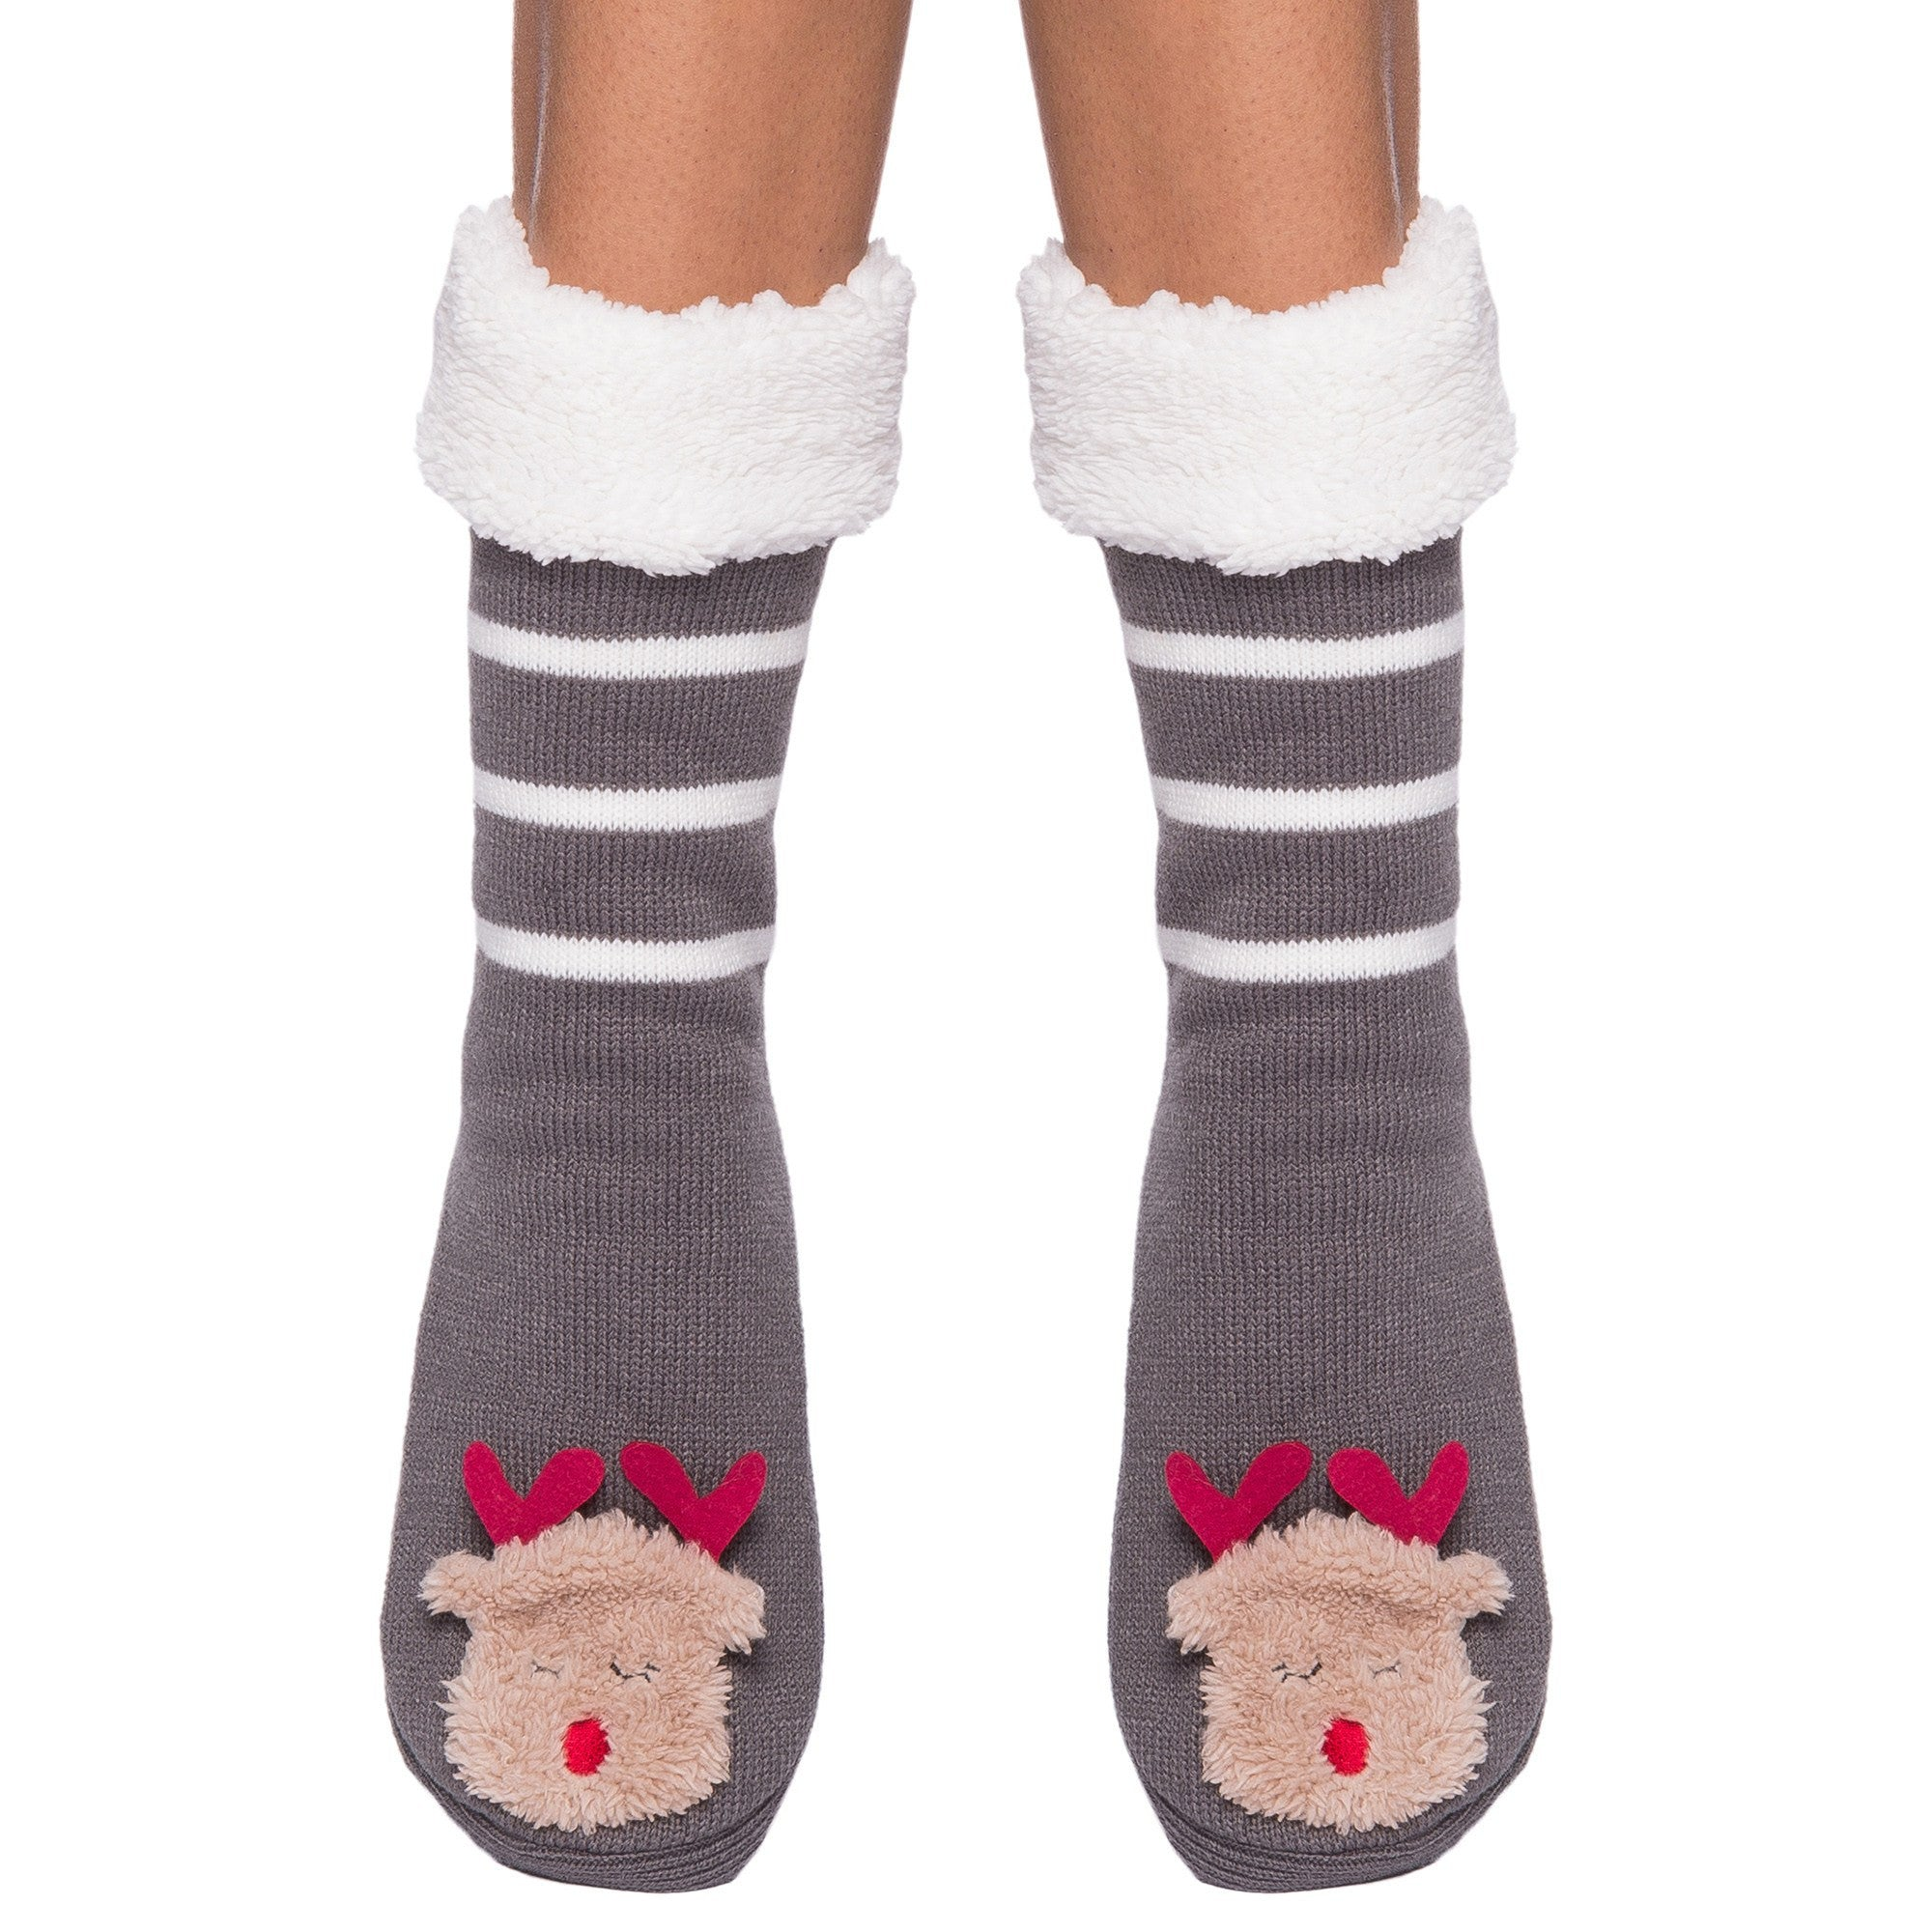 Women's Cute Knit Animal Face Slipper Socks